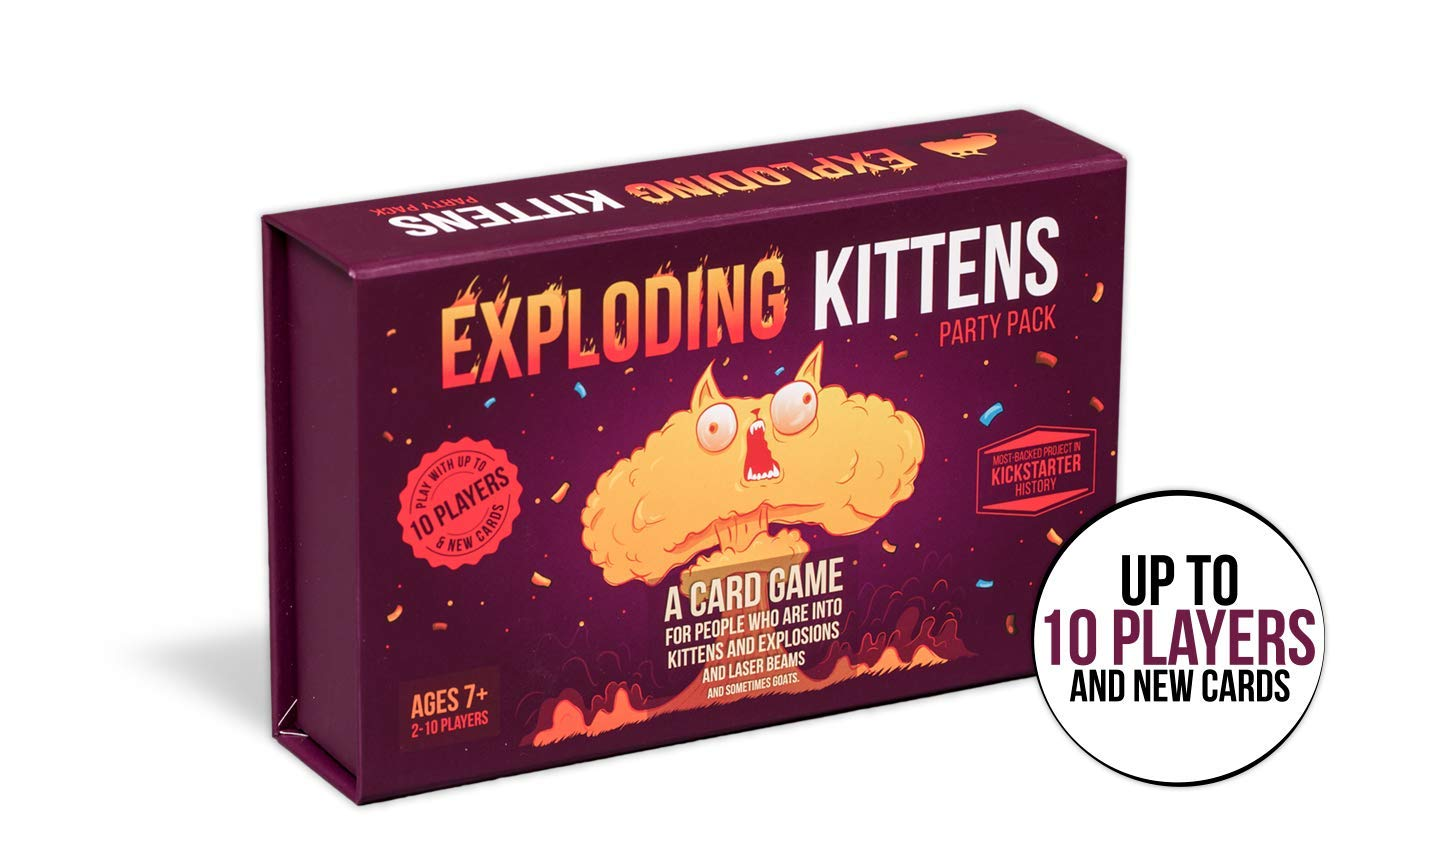 Exploding Kittens Party Pack Game - Play Exploding Kittens with up to 10 Players! by Exploding Kittens LLC (Image #2)